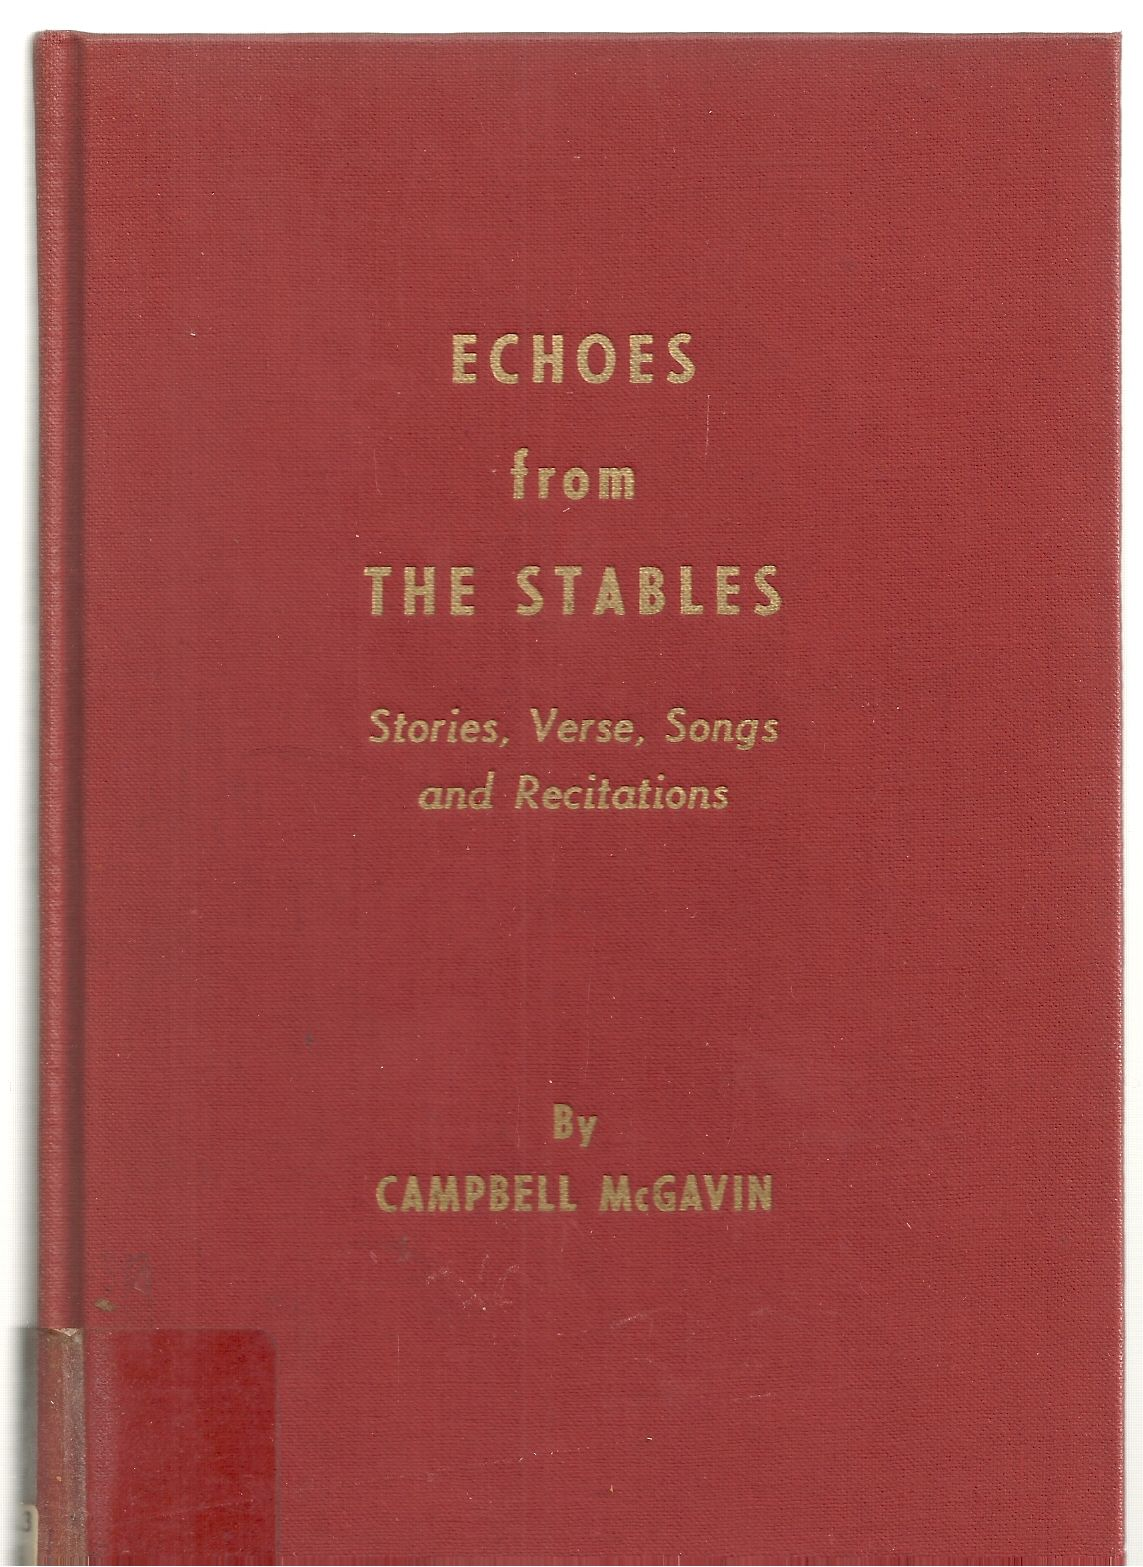 Echoes from the stables;: Stories, verse, songs and recitations,, McGavin, Campbell